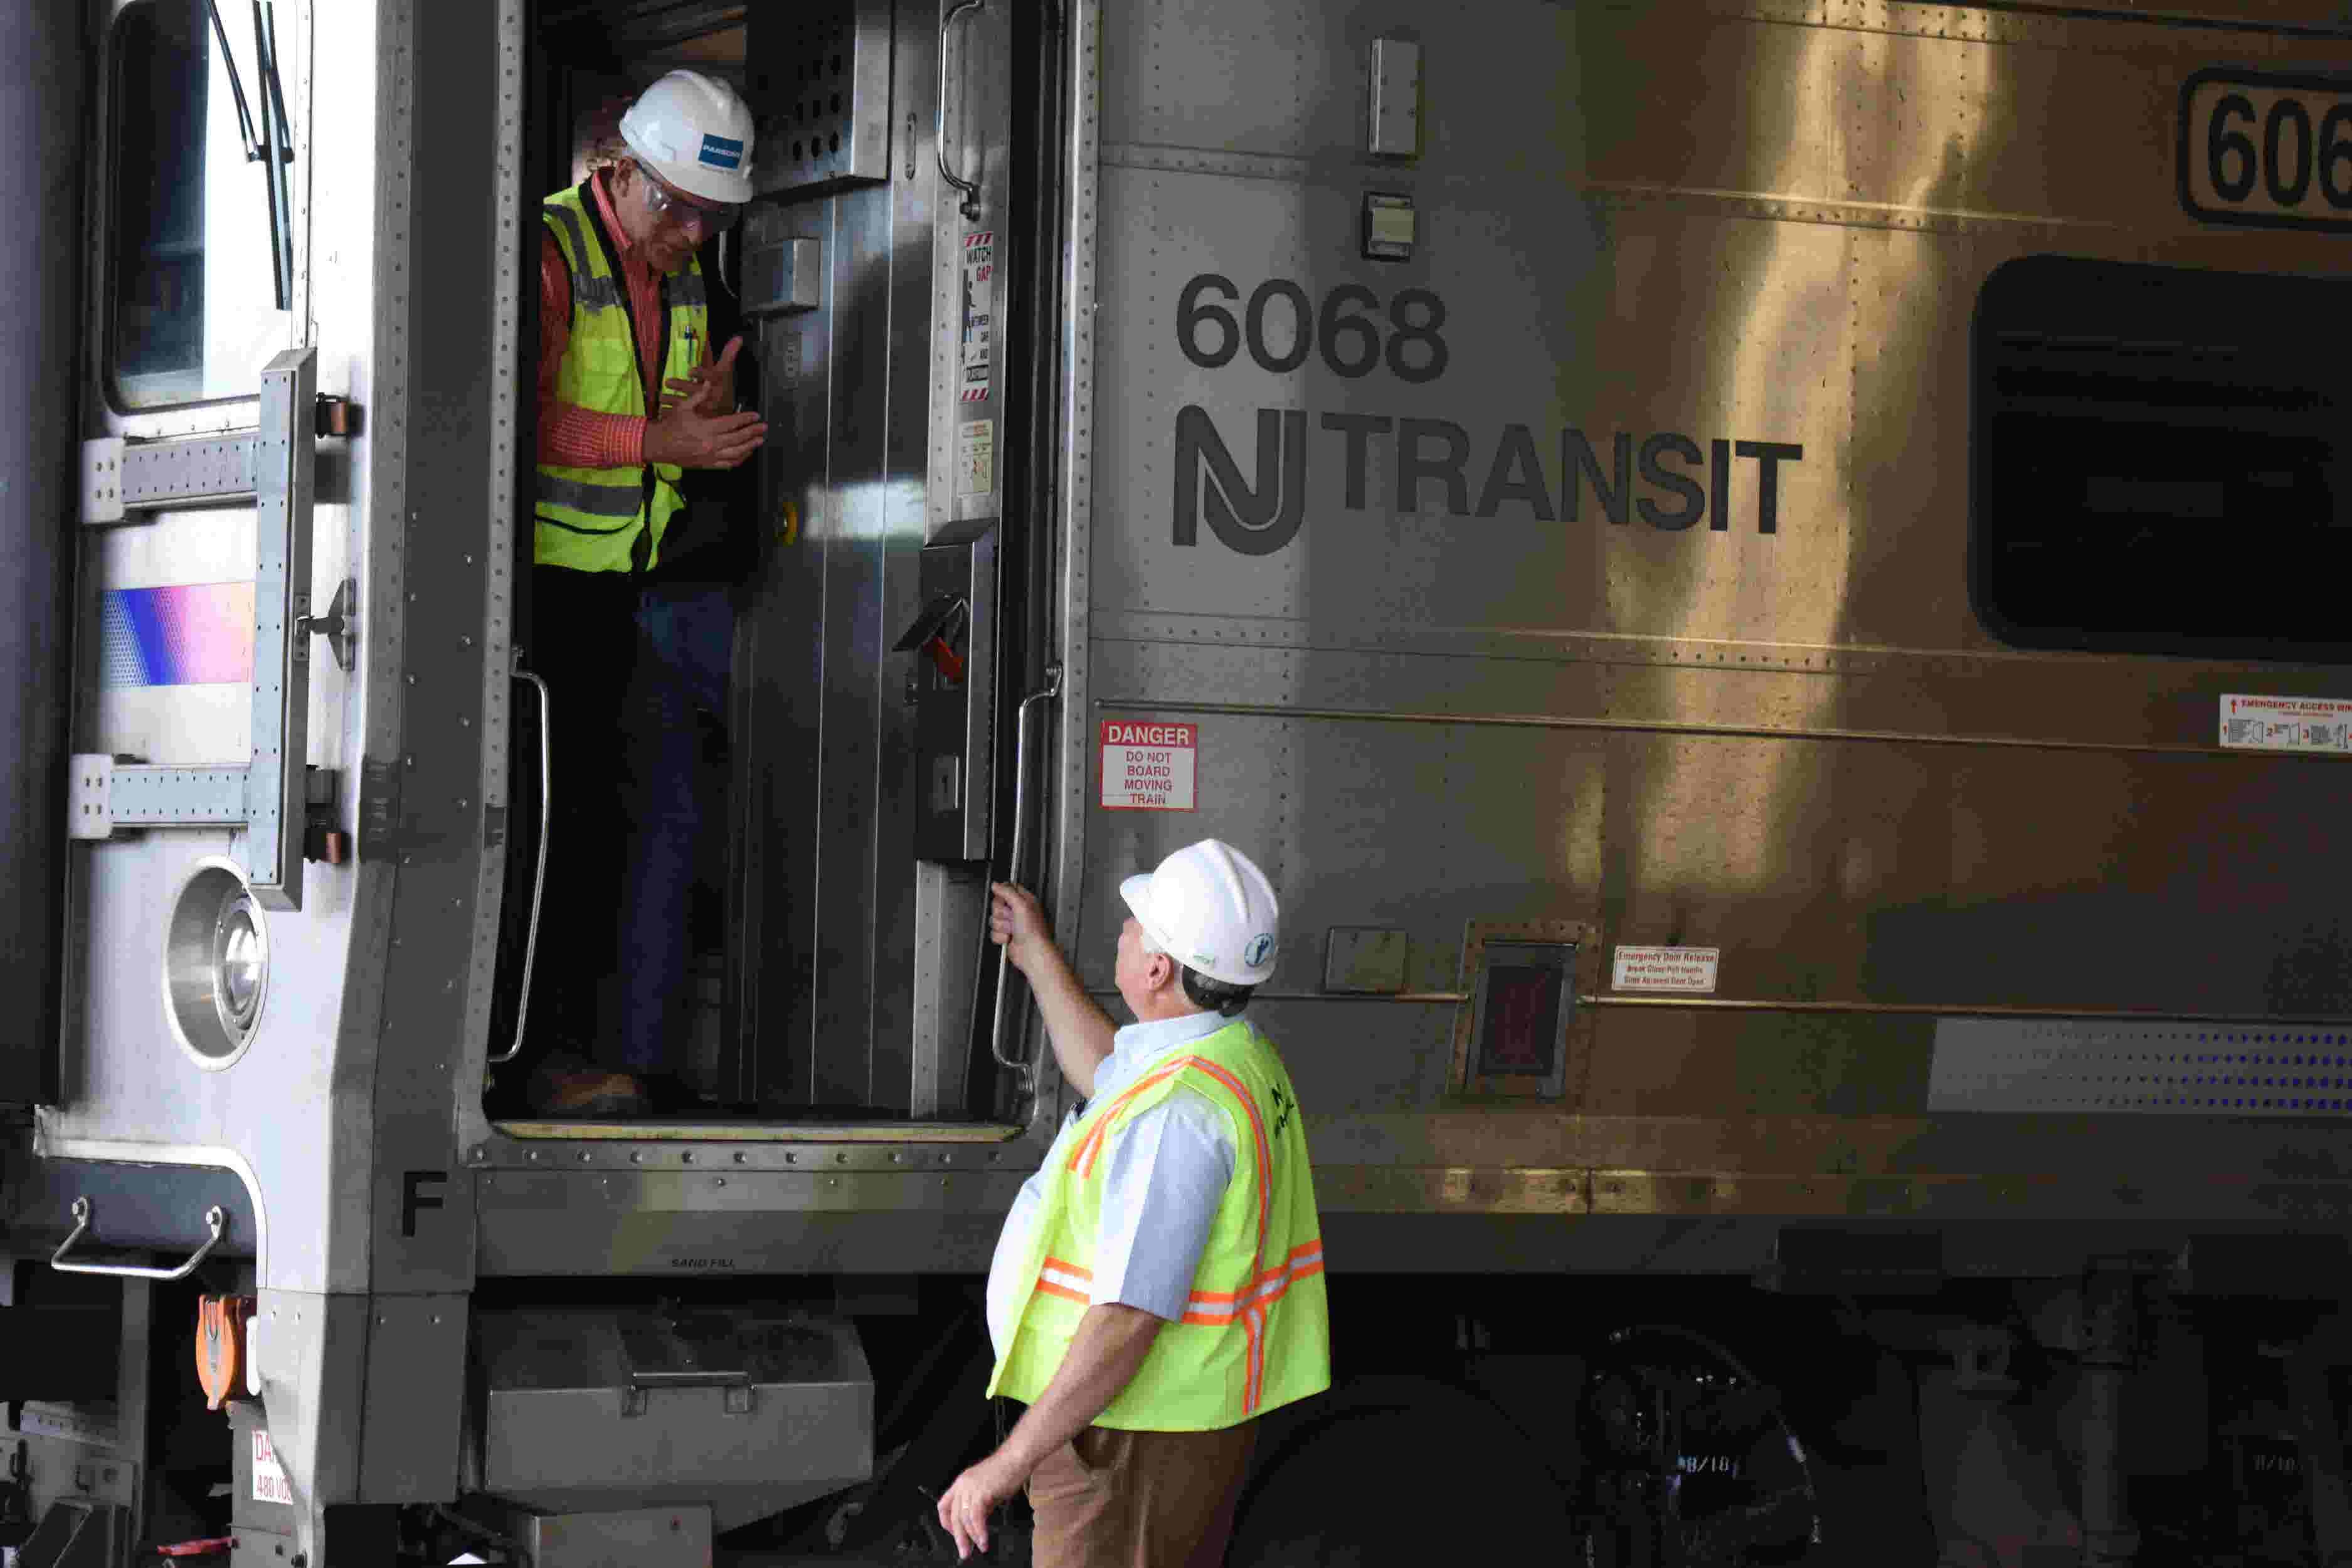 Feds Release New Guidance On 504 >> Murphy Nj Transit Will Finish Positive Train Control Feds Not Sure